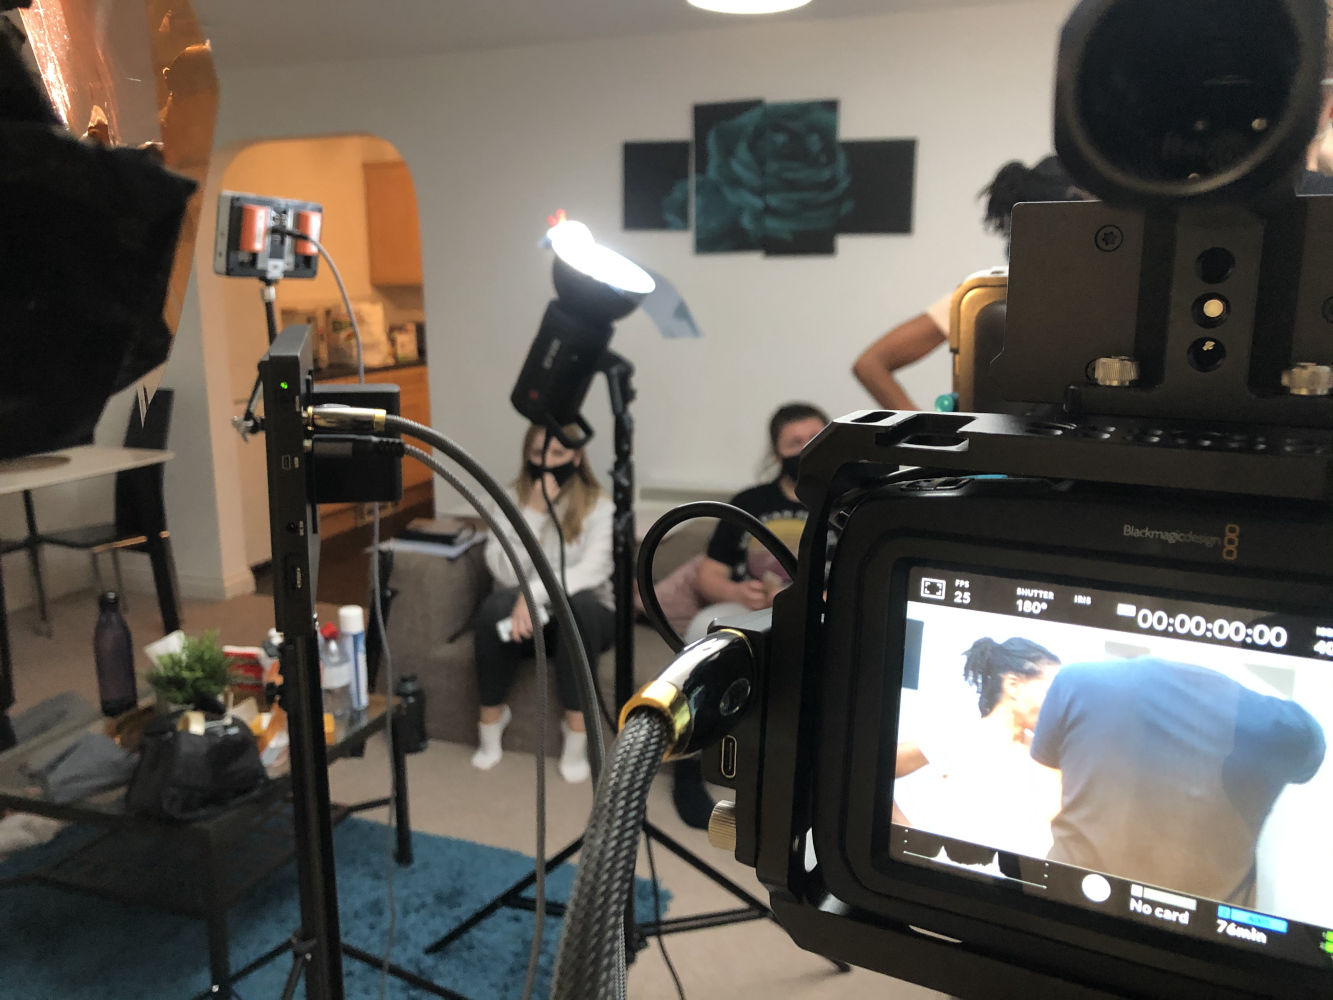 Behind the scenes image from Liam Calvert's Voyager short film, being filmed on the BMPCC4K